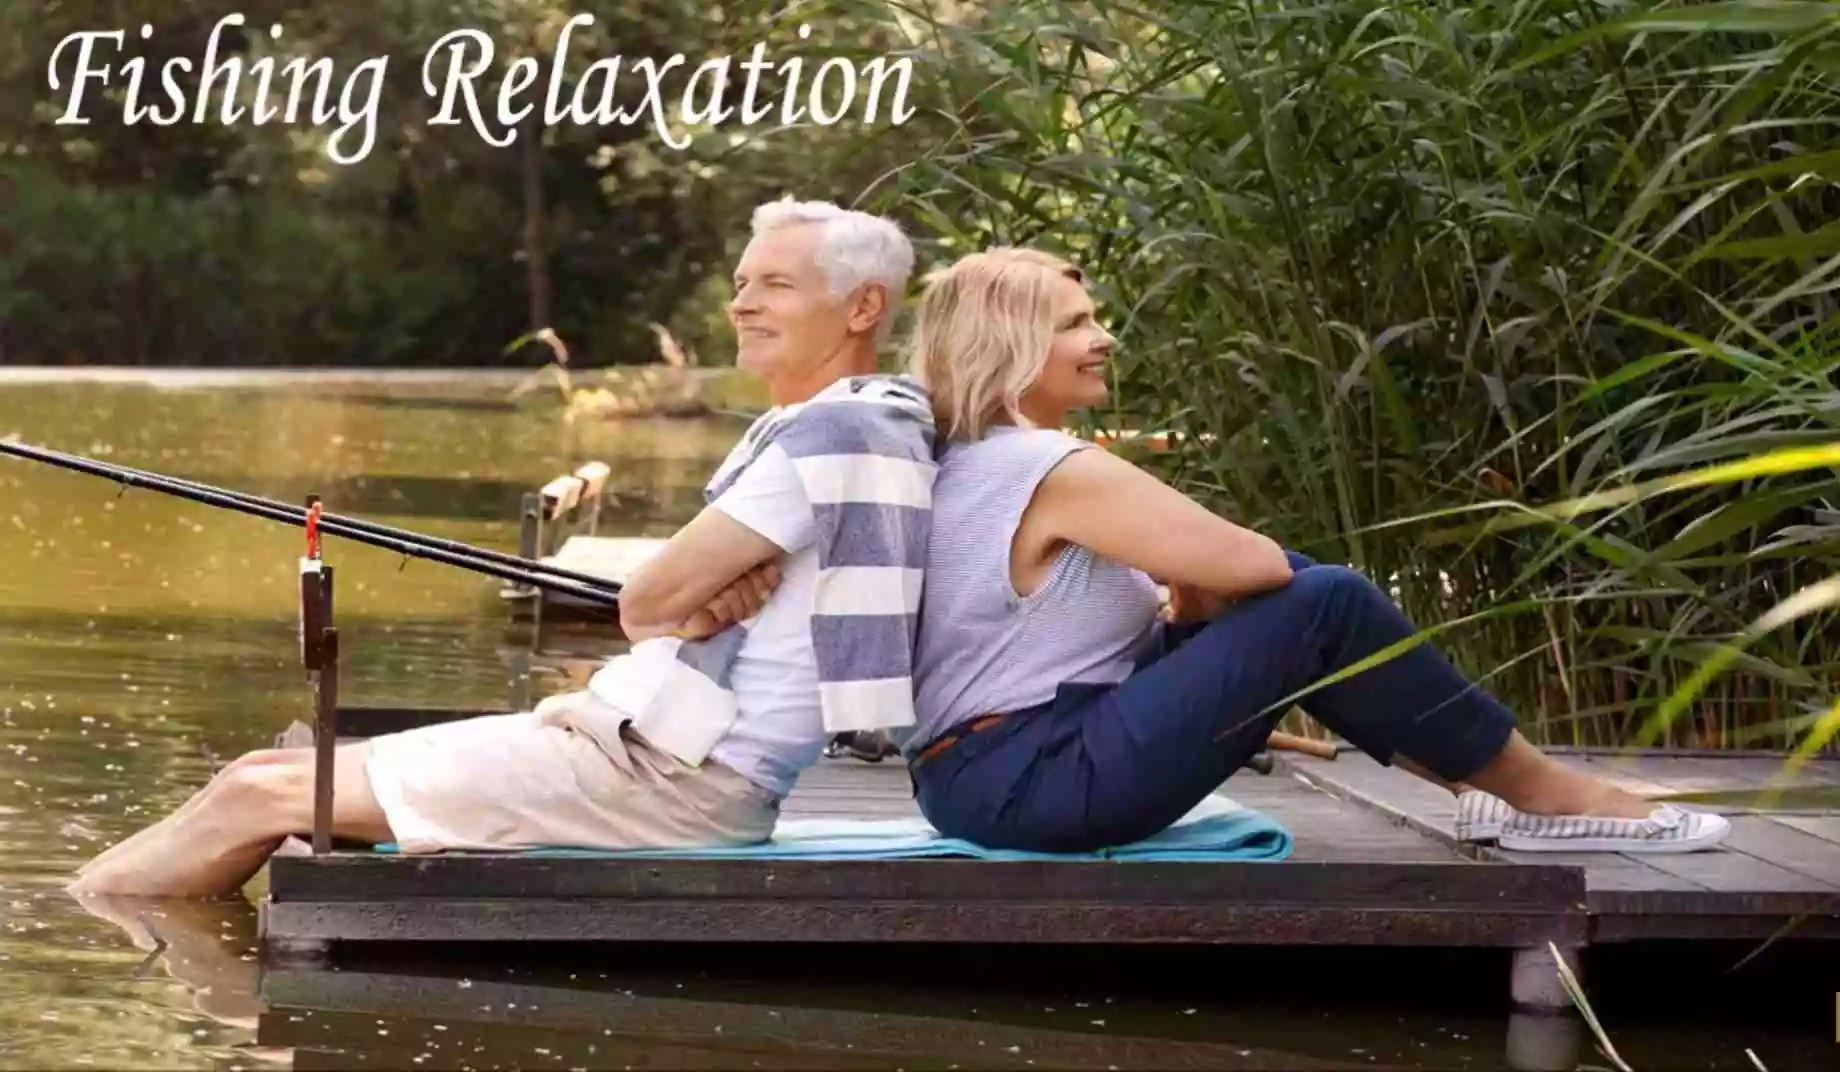 Fishing helps you relax